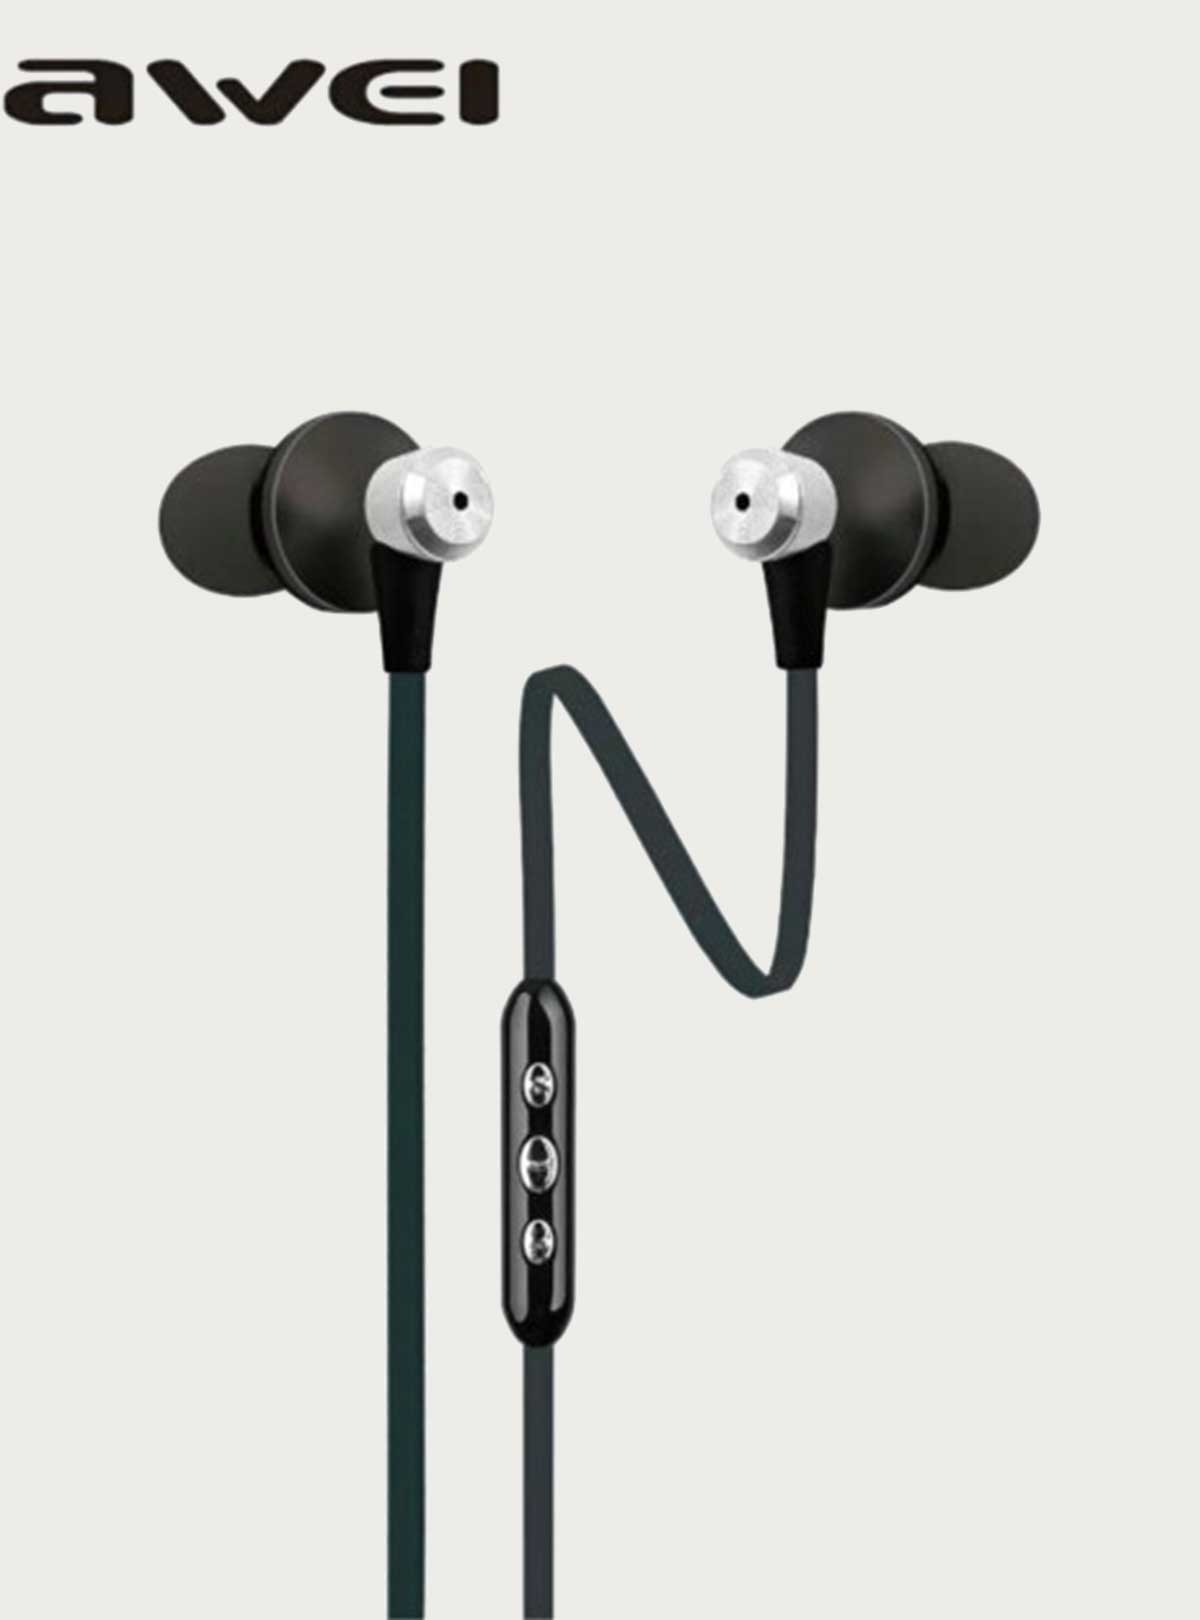 Awei 850vi In-Ear Wired Earphone with Mic